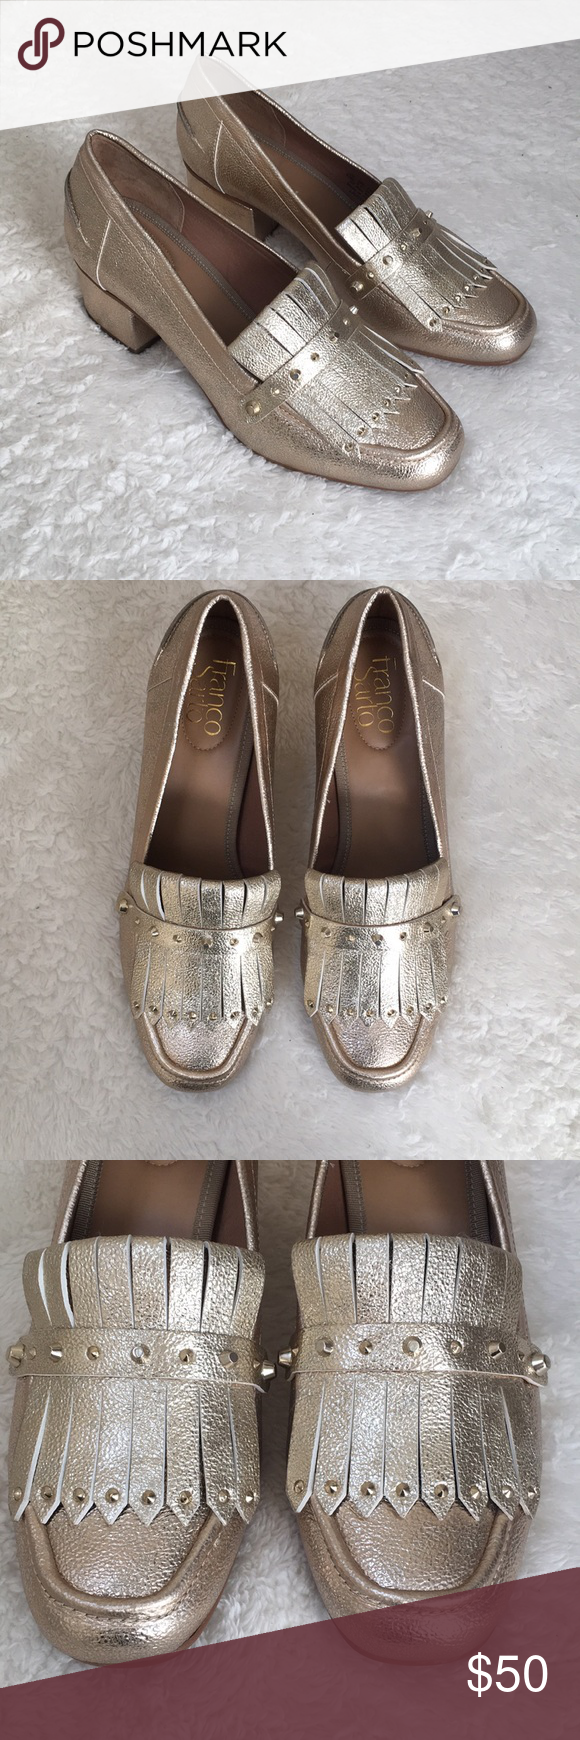 21b867775ae New Franco Sarto Lauryn block heel loafers 8.5 New without tags Franco  Sarto Lauryn gold metallic block heels. Never worn- no scratches or other  defects.